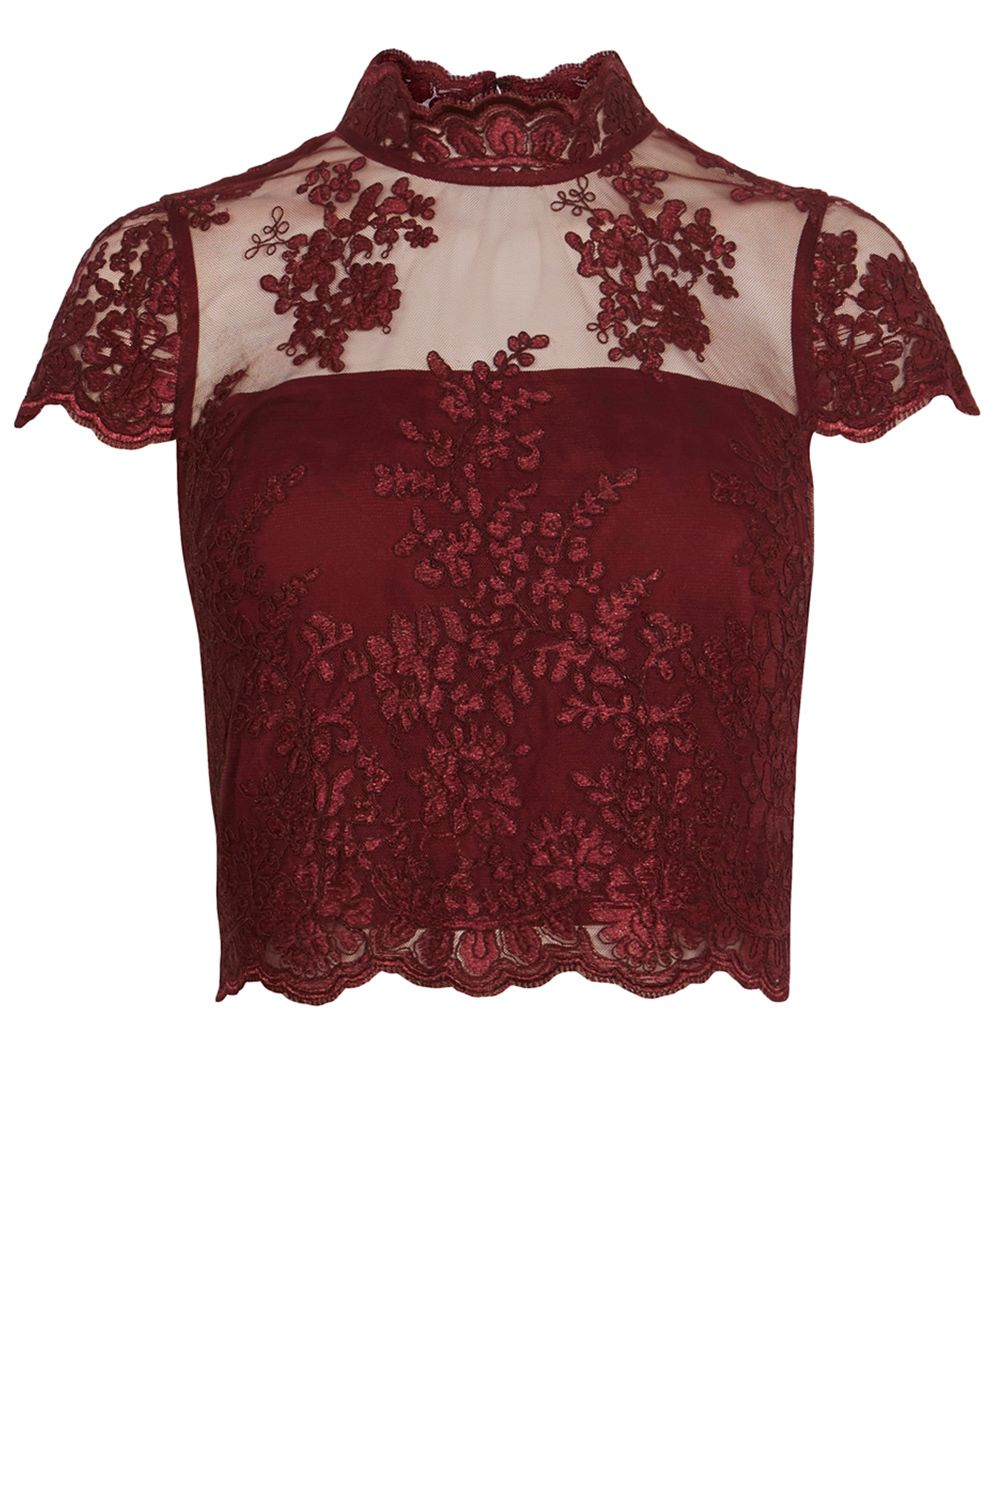 Coast Jen Lace Bridesmaid Top, Wine